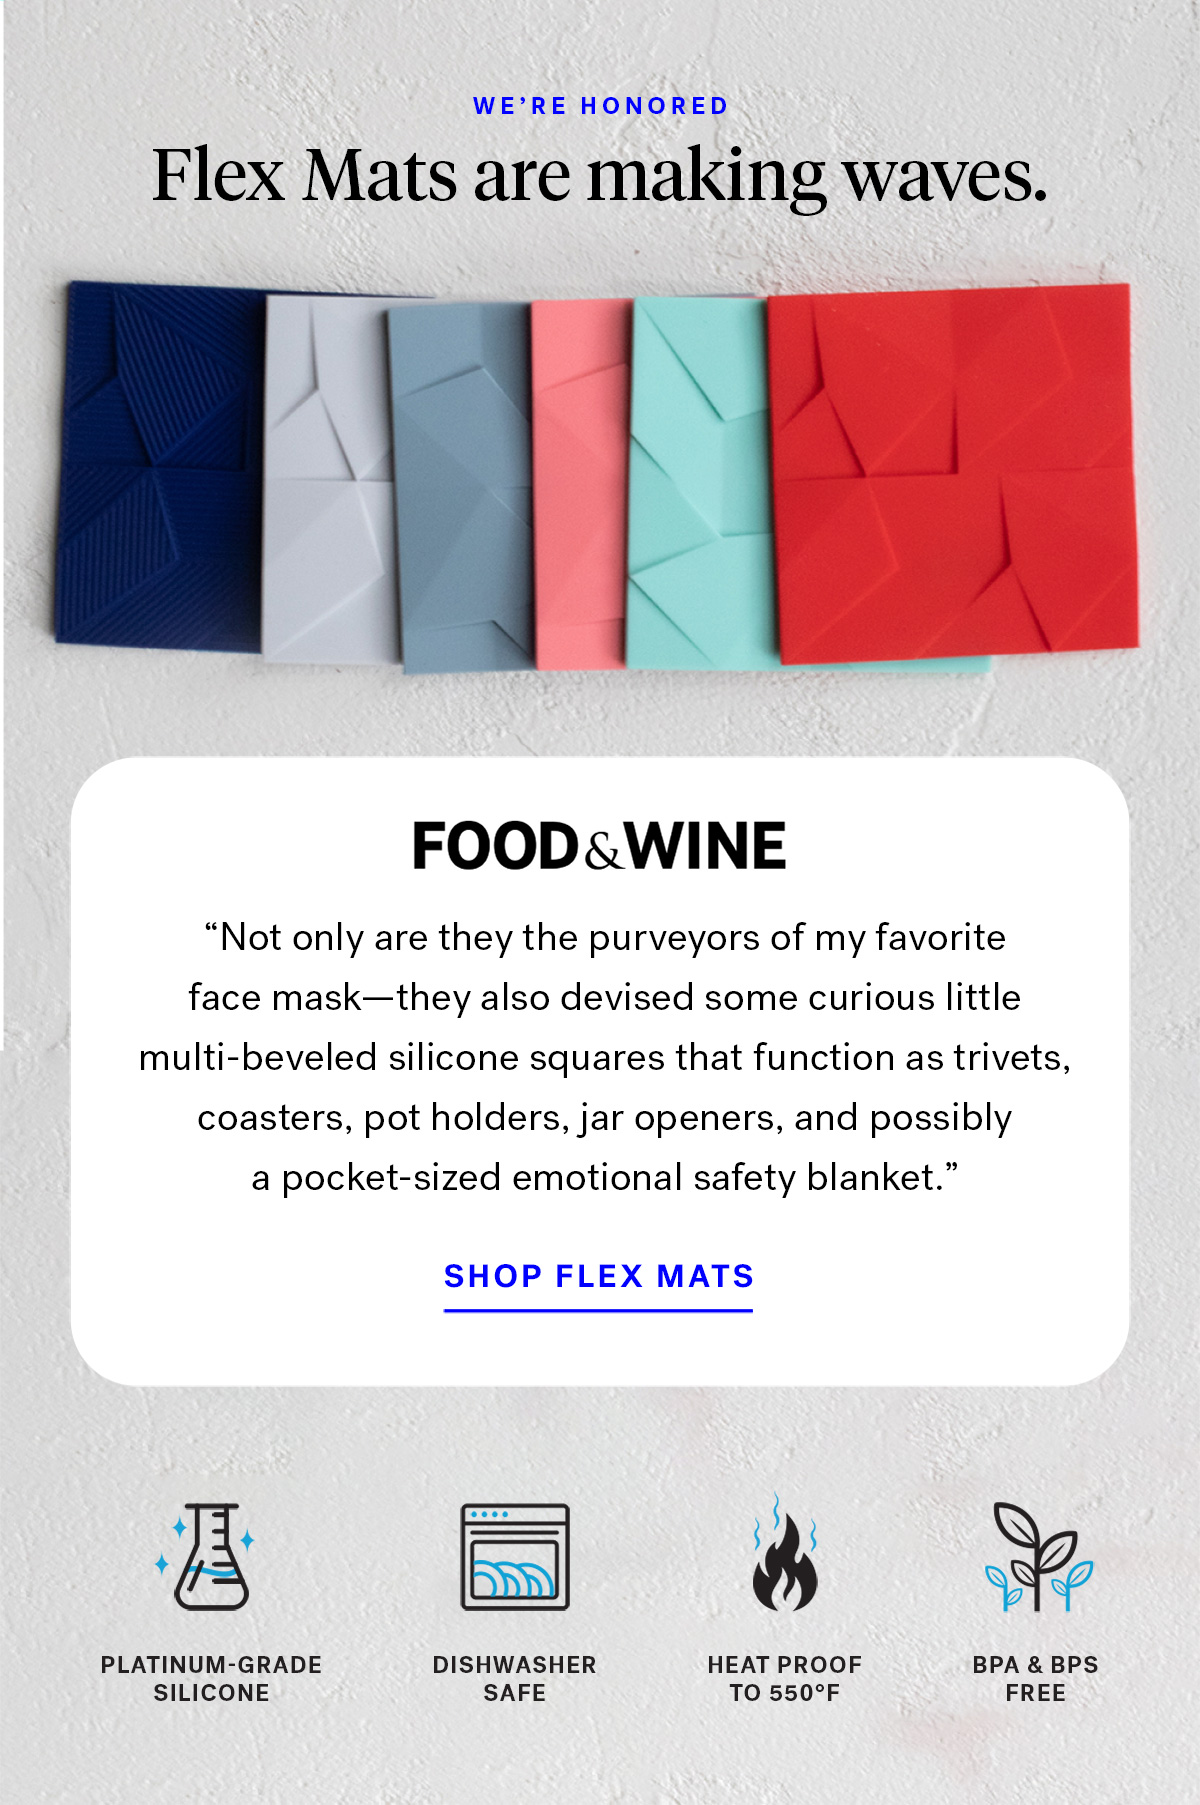 We're honored